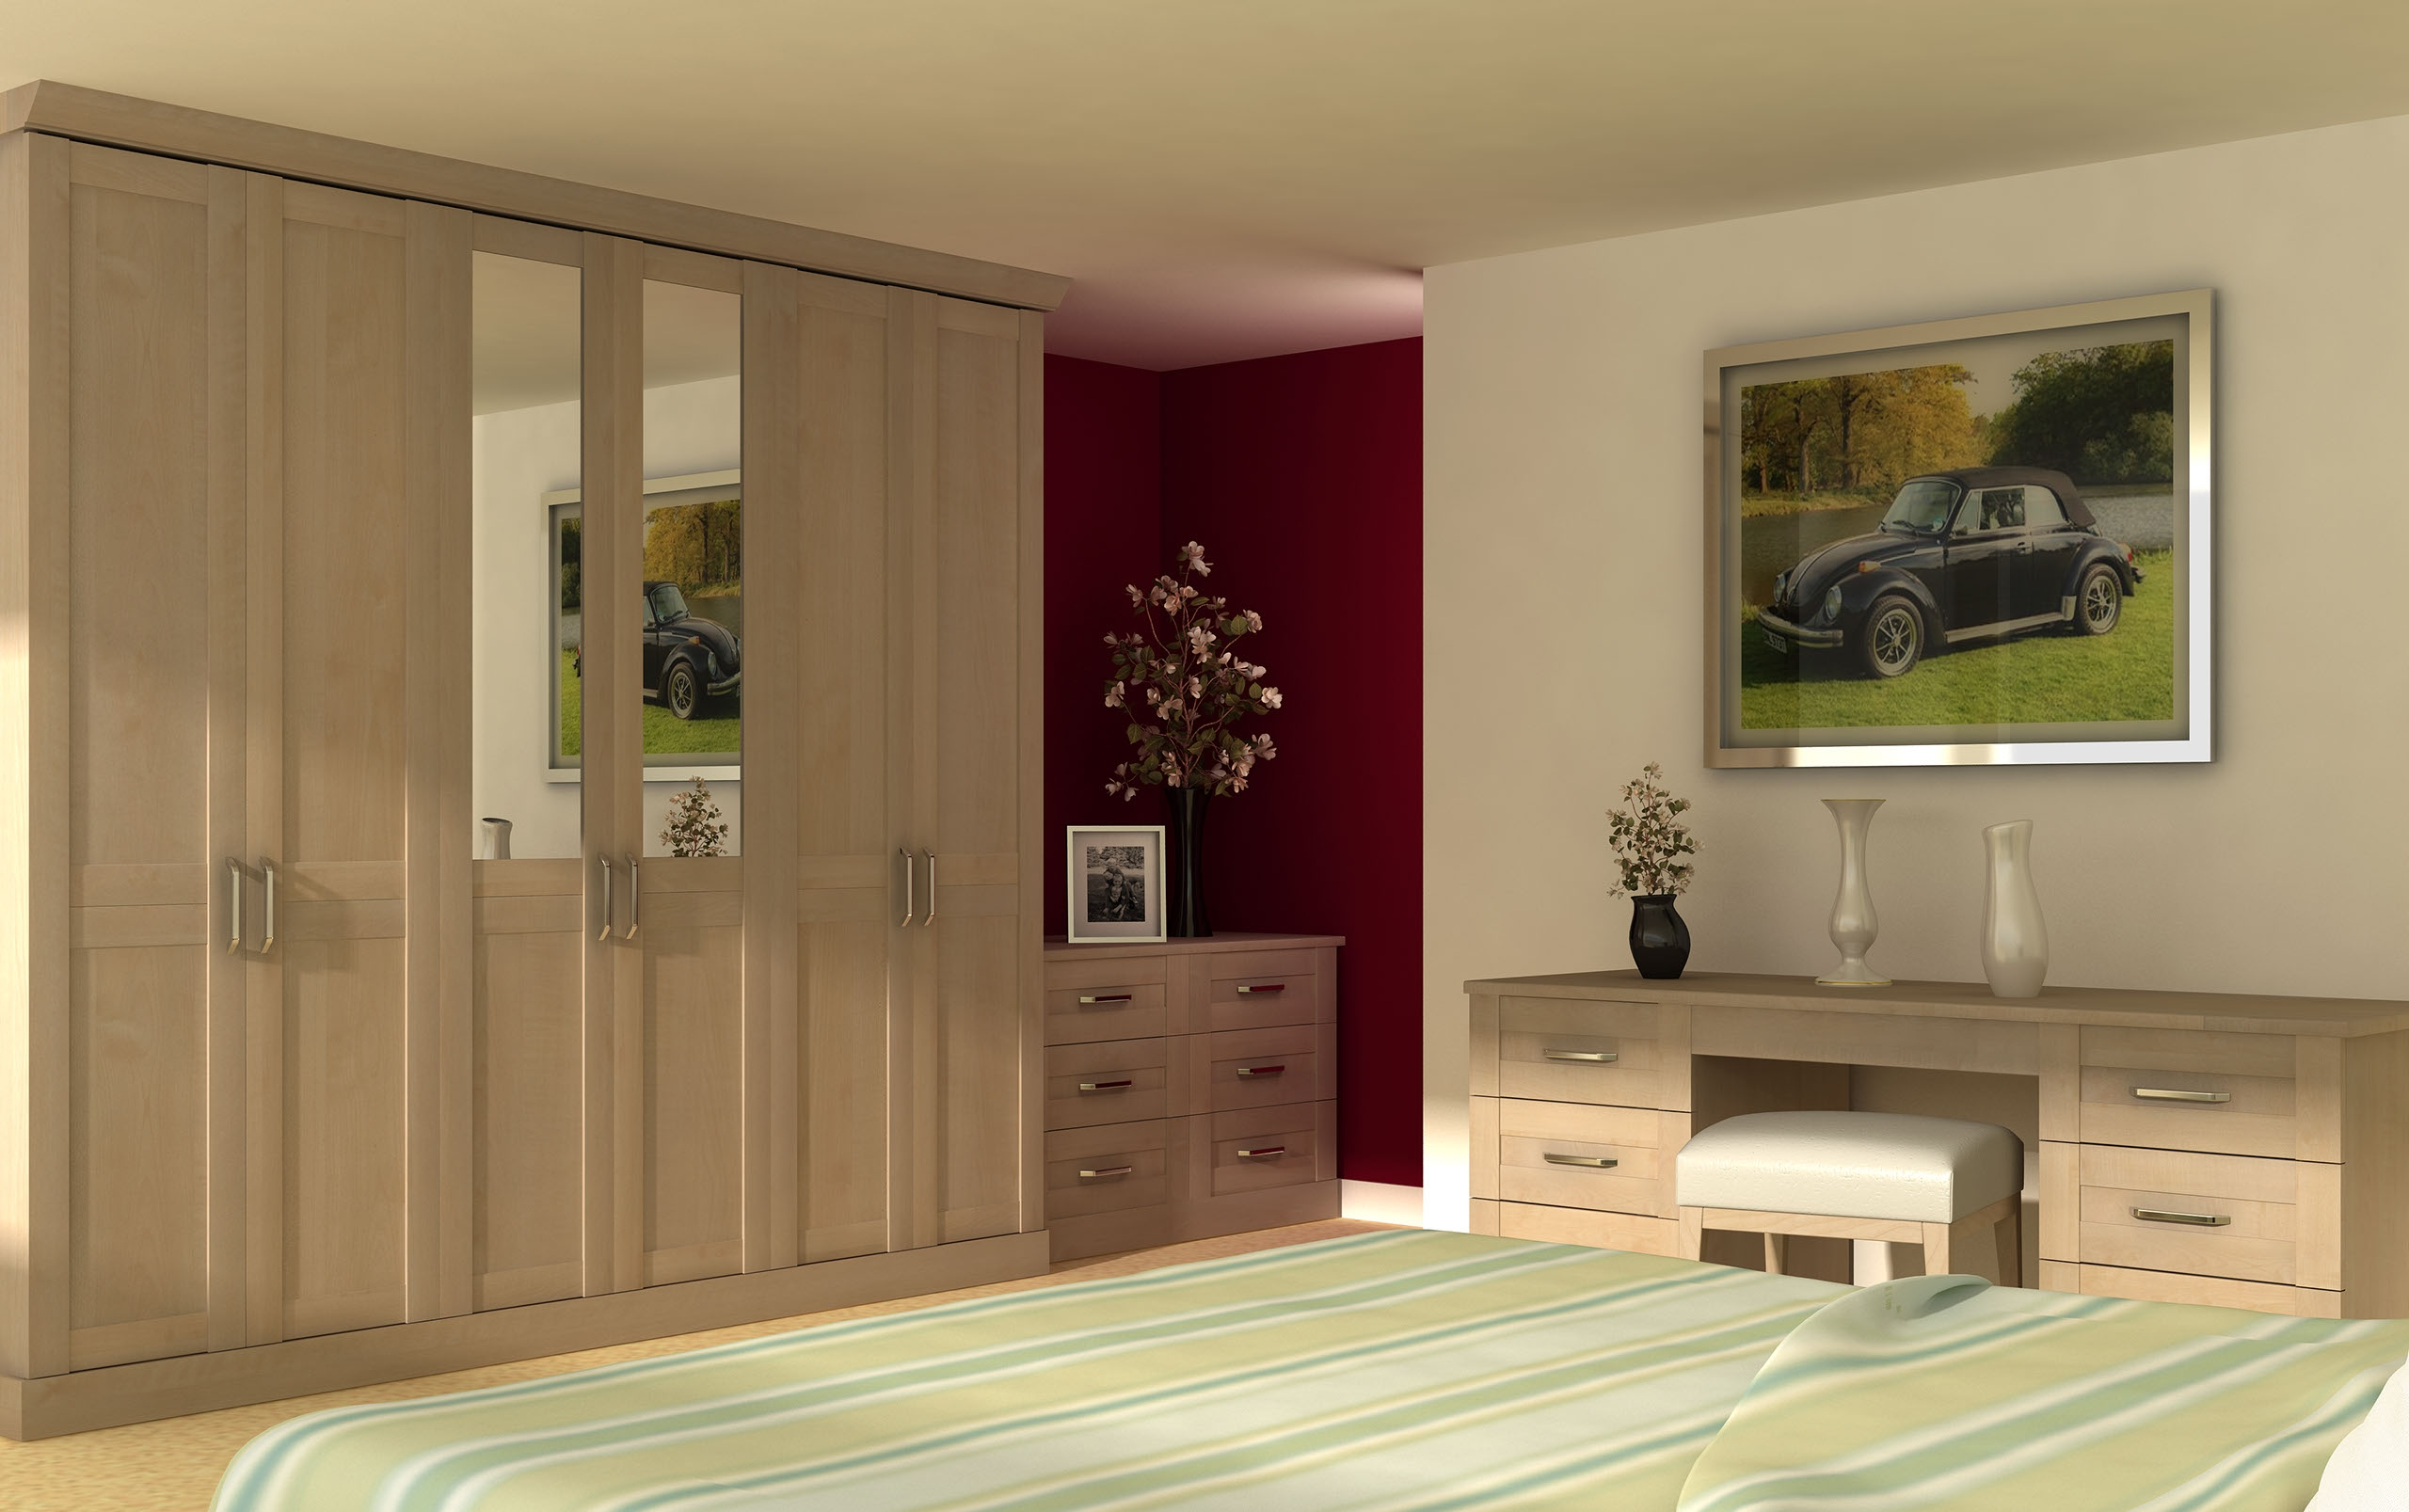 Fitted Sliding Wardrobes Excellent Mirrored Fitted Wardrobes Intended For Solid Wood Built In Wardrobes (View 12 of 15)